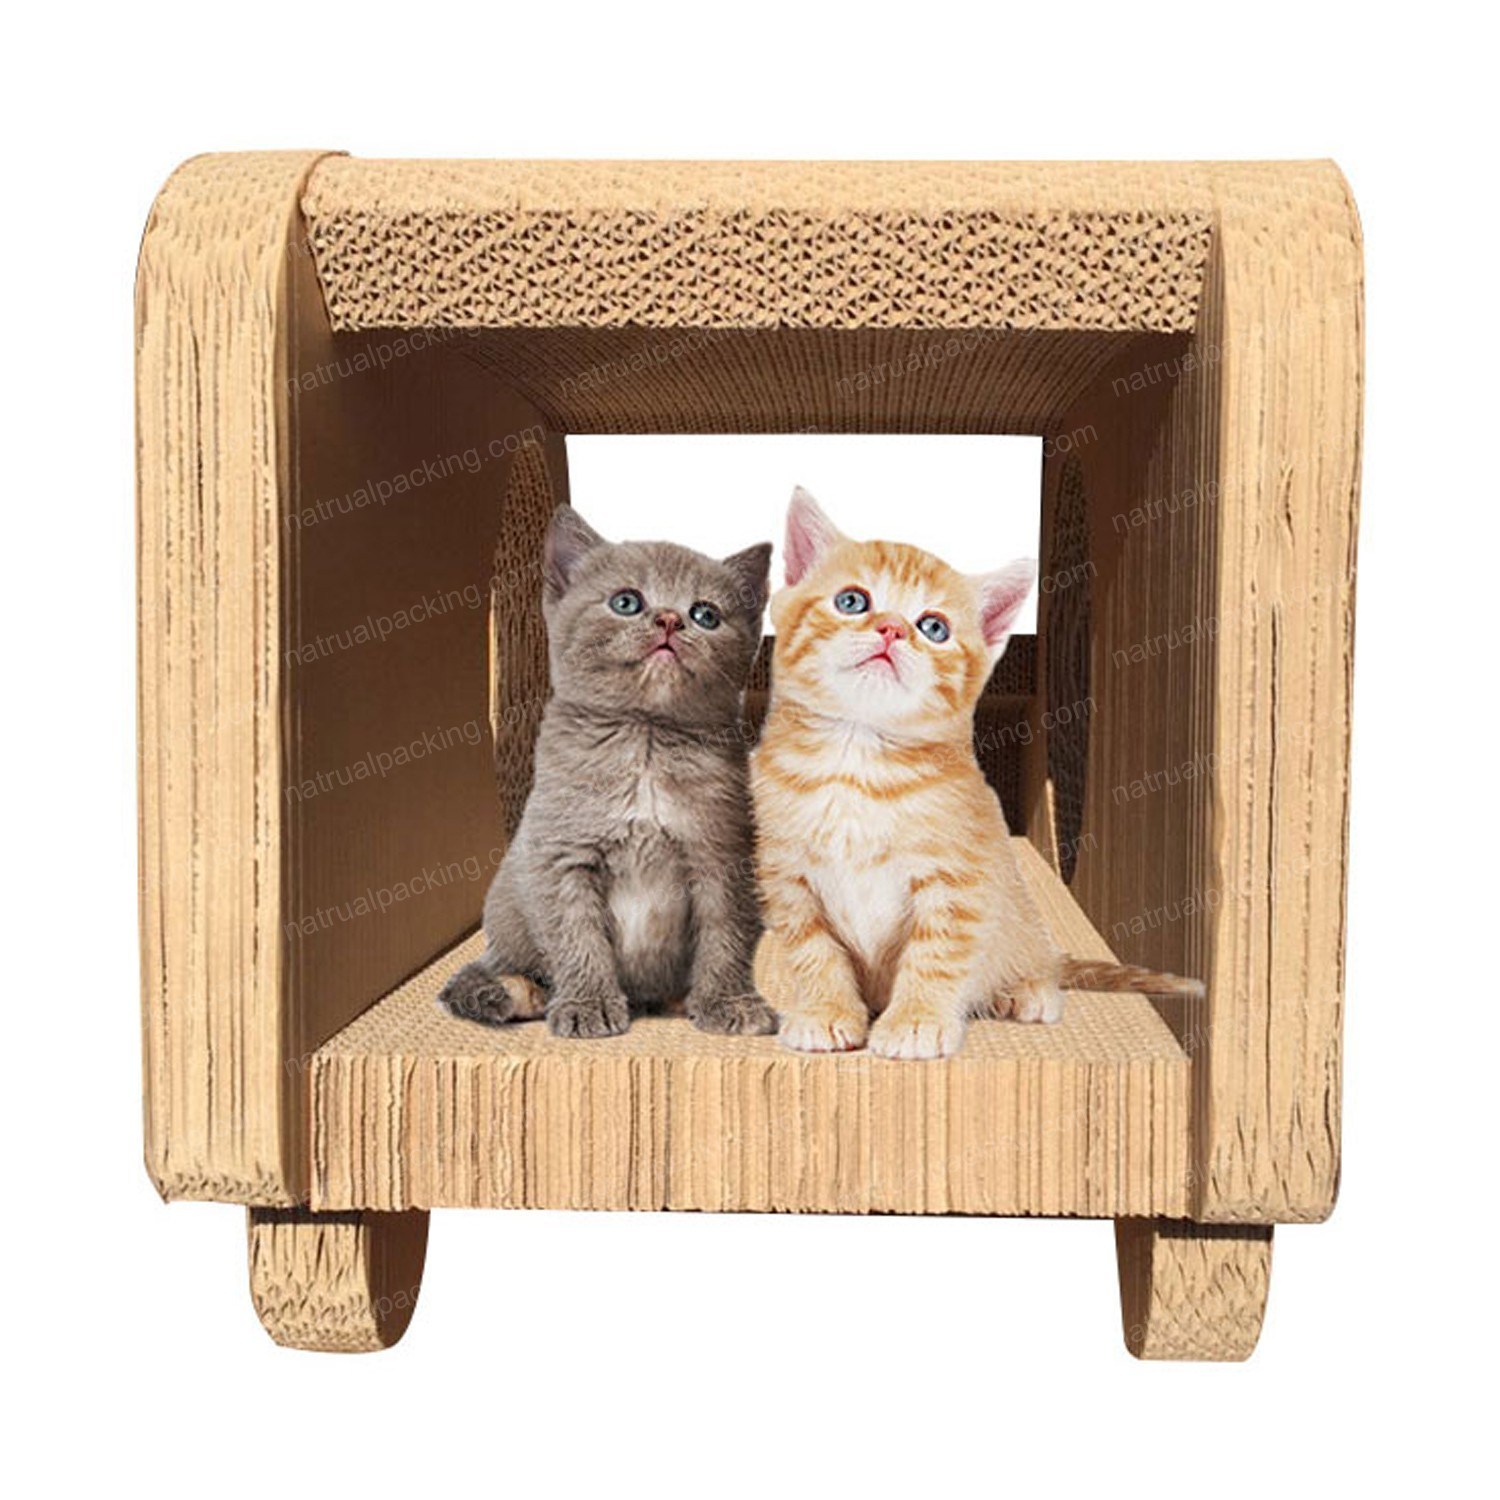 Ordinaire China Cats Toy Tree Protect Furniture Cat Scratching Board   China Cat  Scratching Board, Sofa Cat Scratching Board